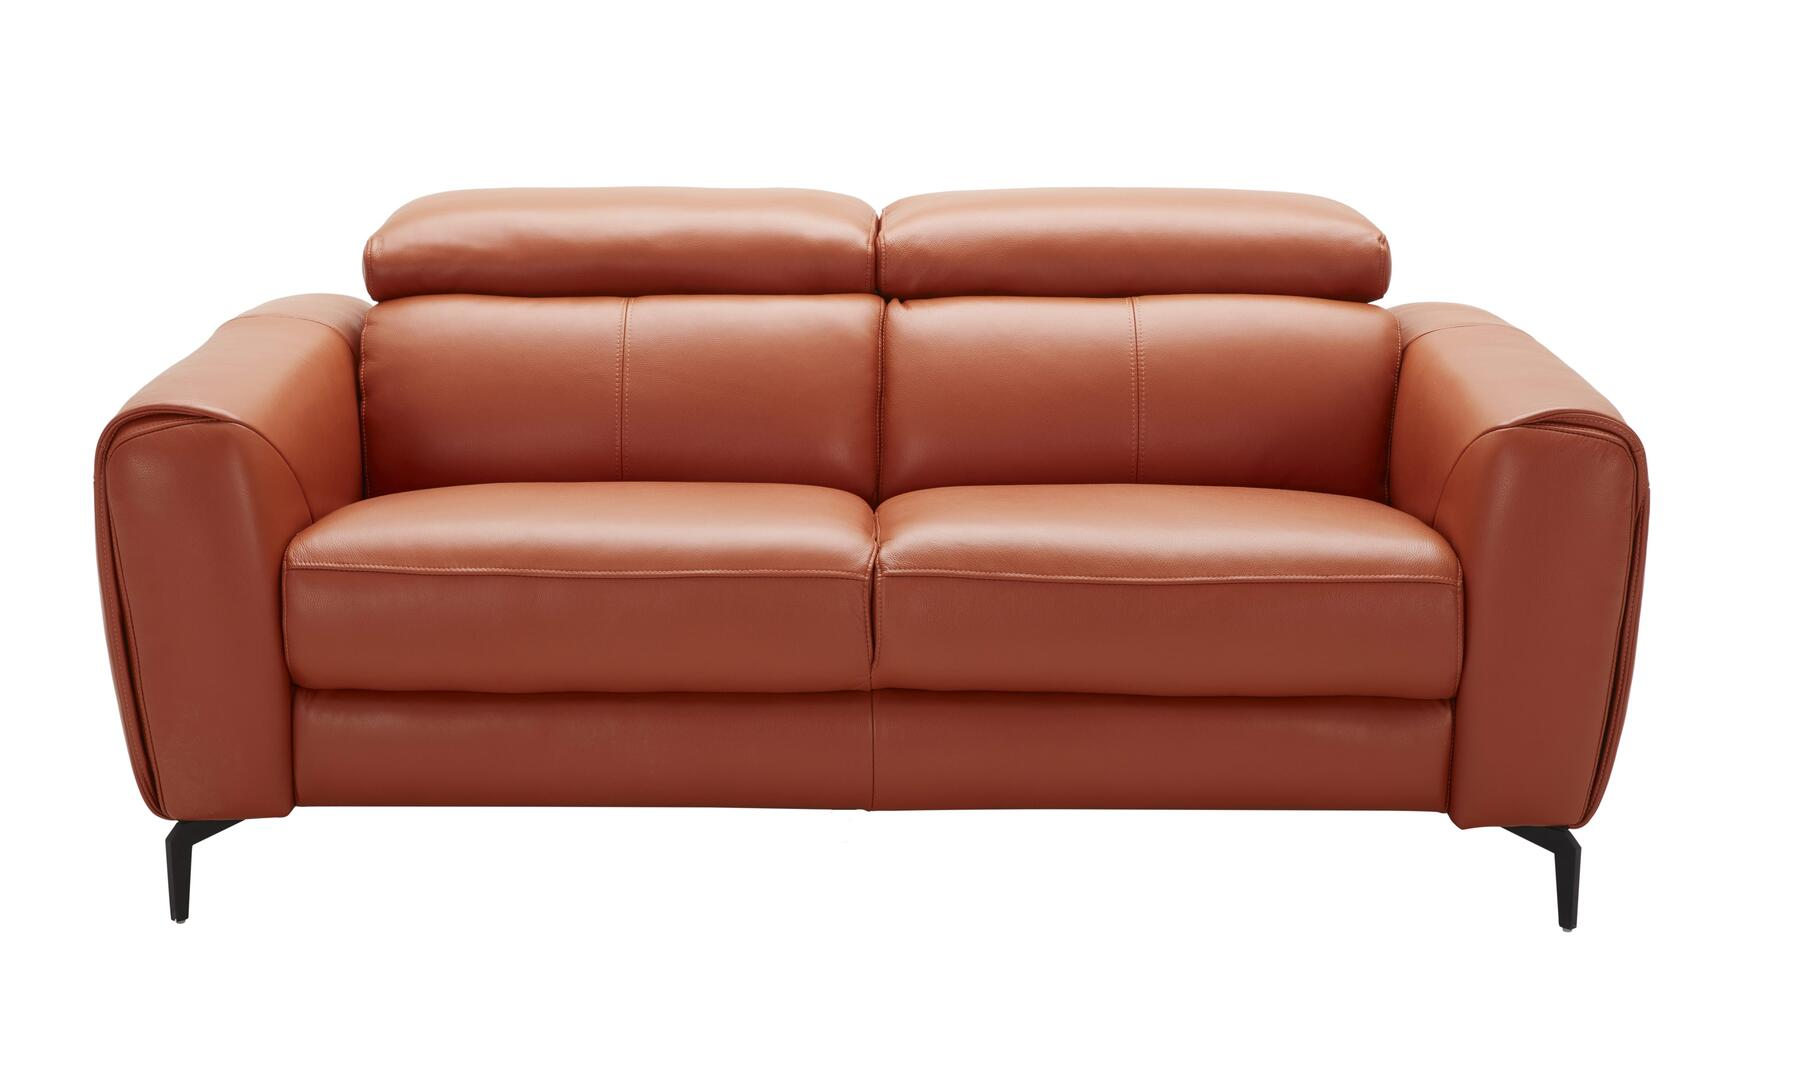 J And M Furniture 18742l Cooper Series Leather Stationary With Wood Frame Loveseat Appliances